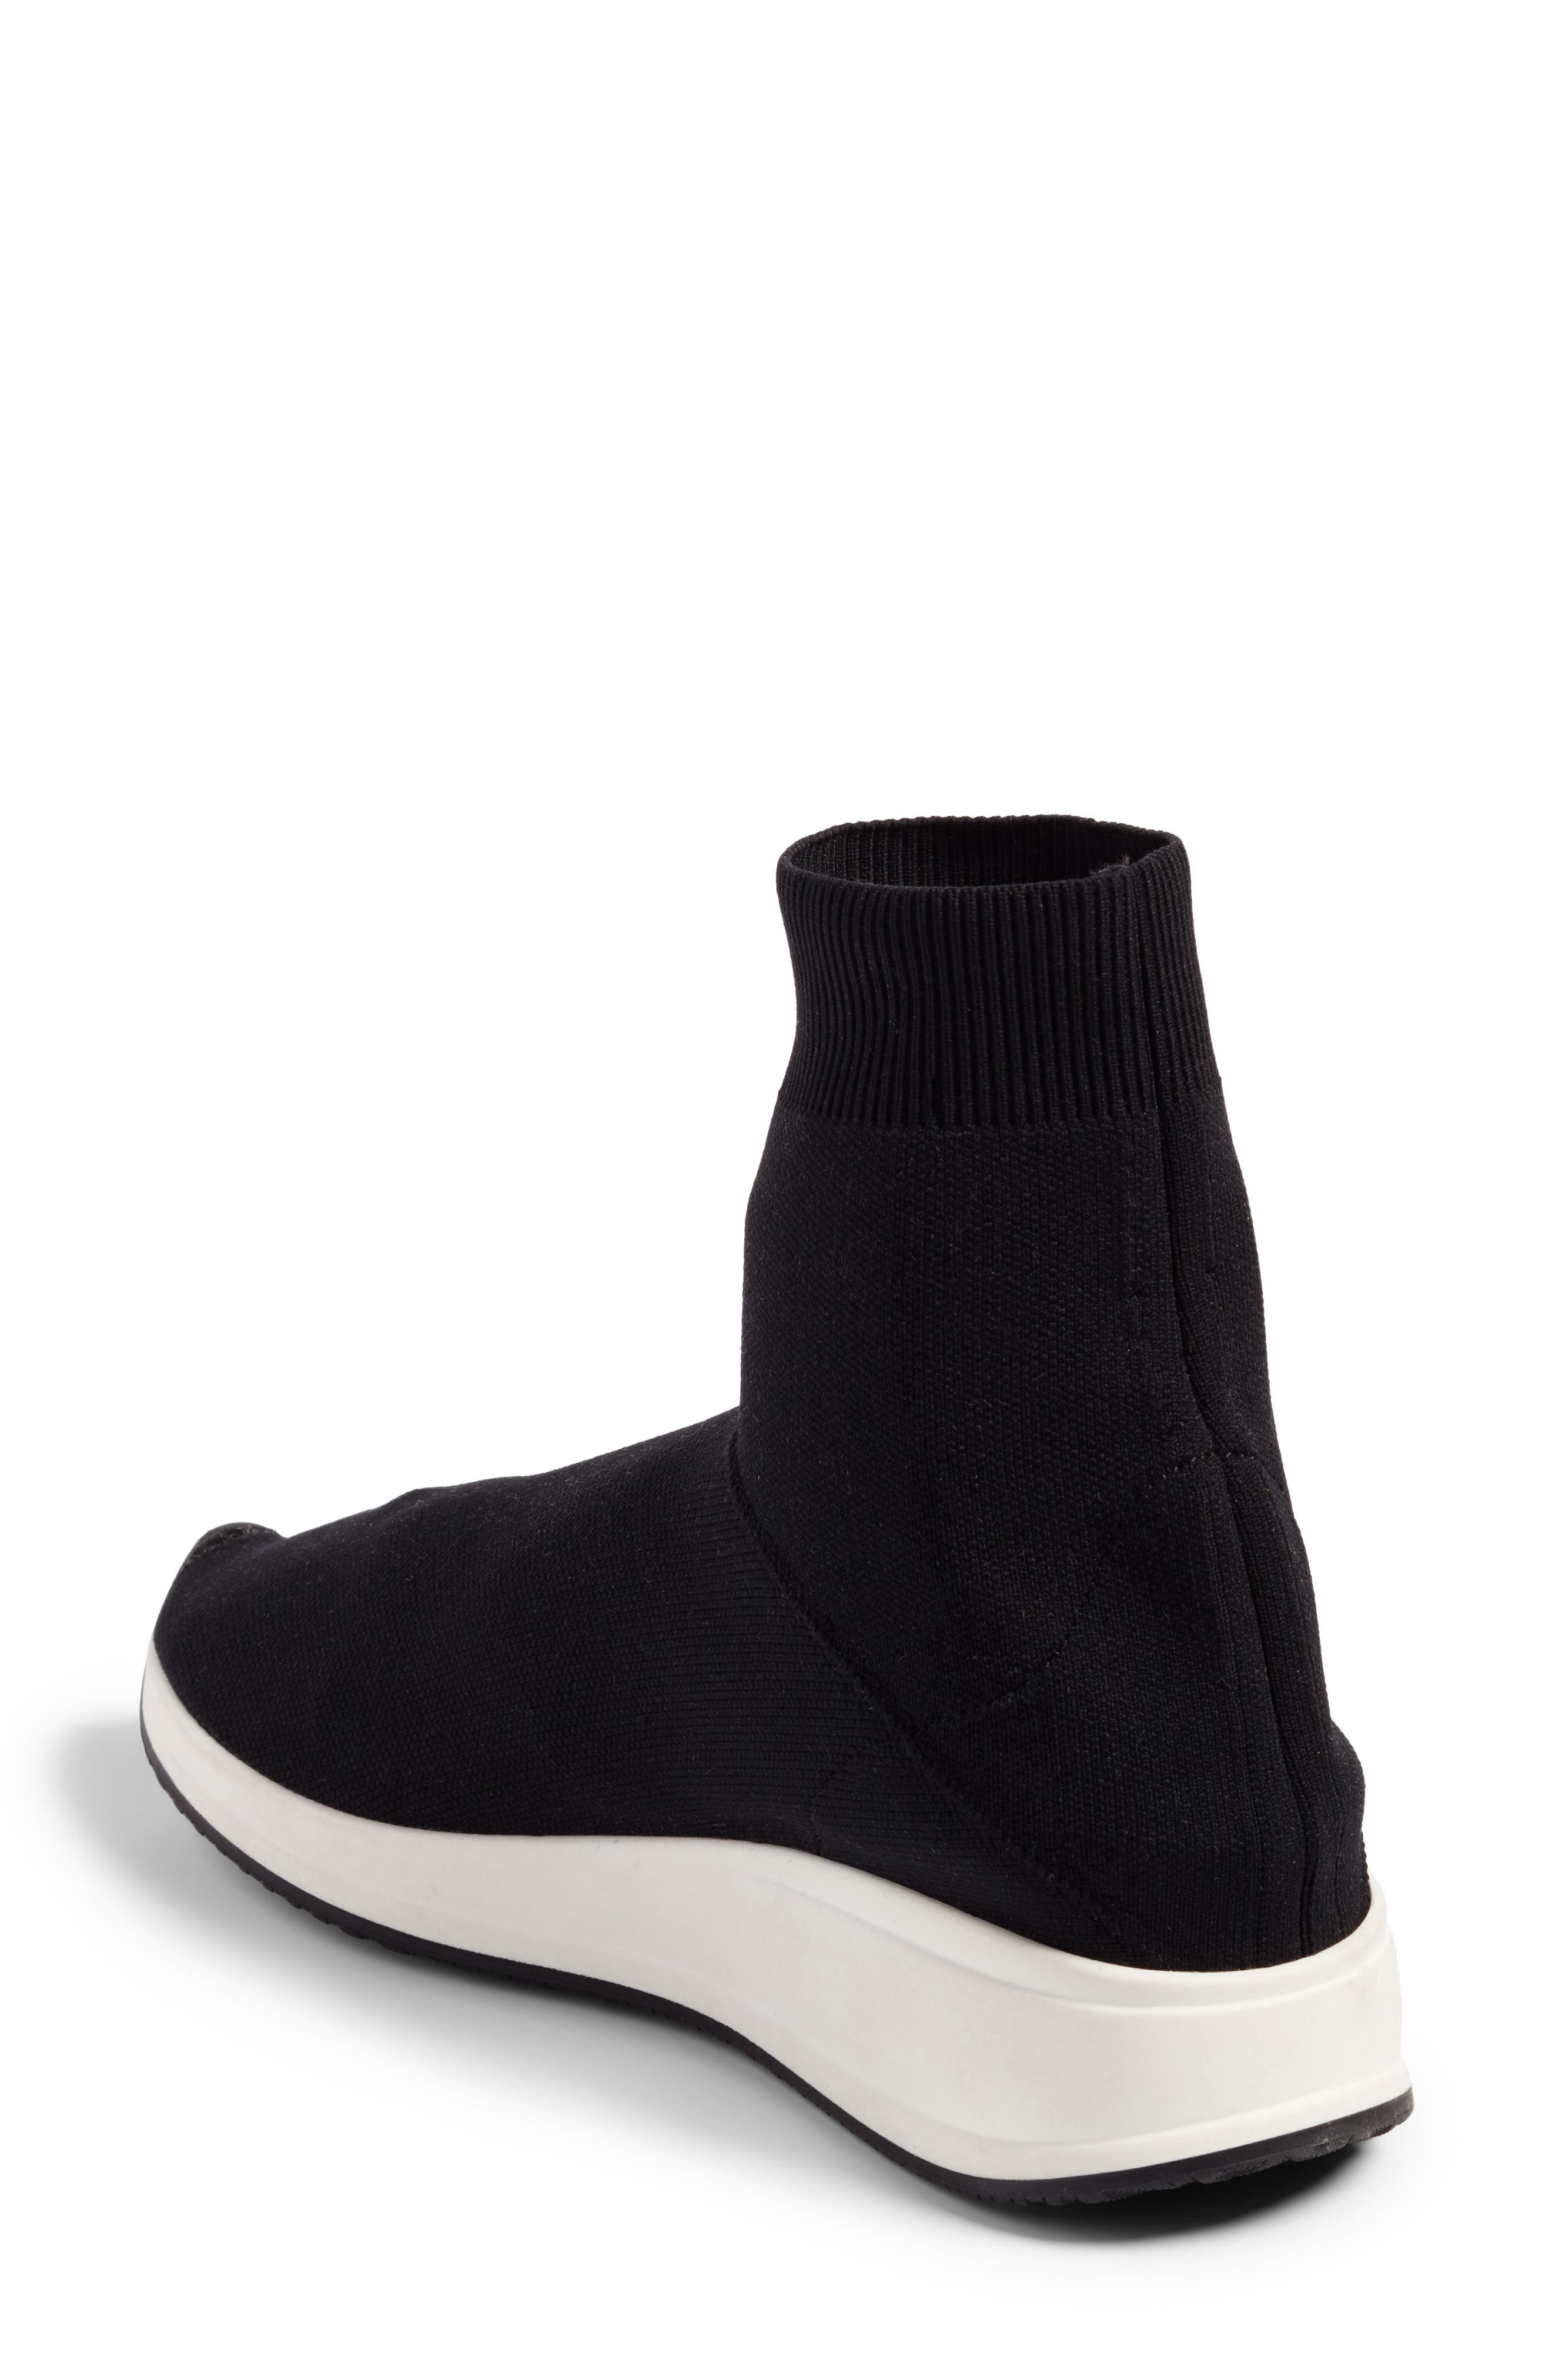 Fly To High Top Sock Sneaker,                             Alternate thumbnail 2, color,                             002